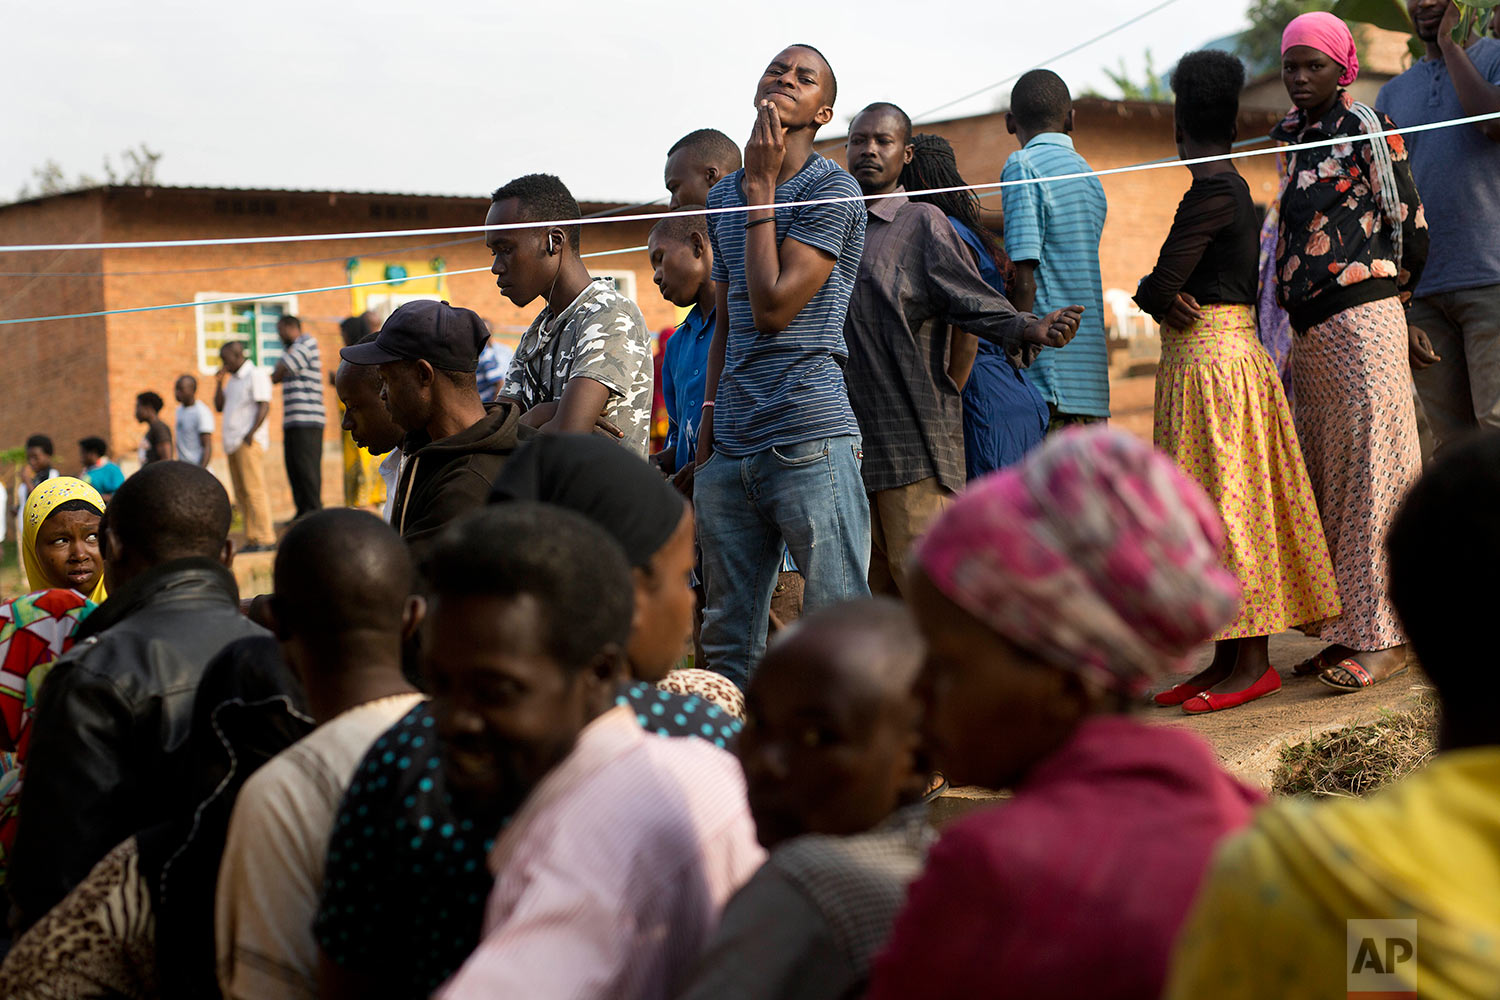 Rwandans line up to vote in a polling station in Rwanda's capital Kigali Friday Aug. 4, 2017 for the presidential elections in which outgoing president Paul Kagame is widely expected to win another term after the government disqualified all but three candidates. (AP Photo/Jerome Delay)